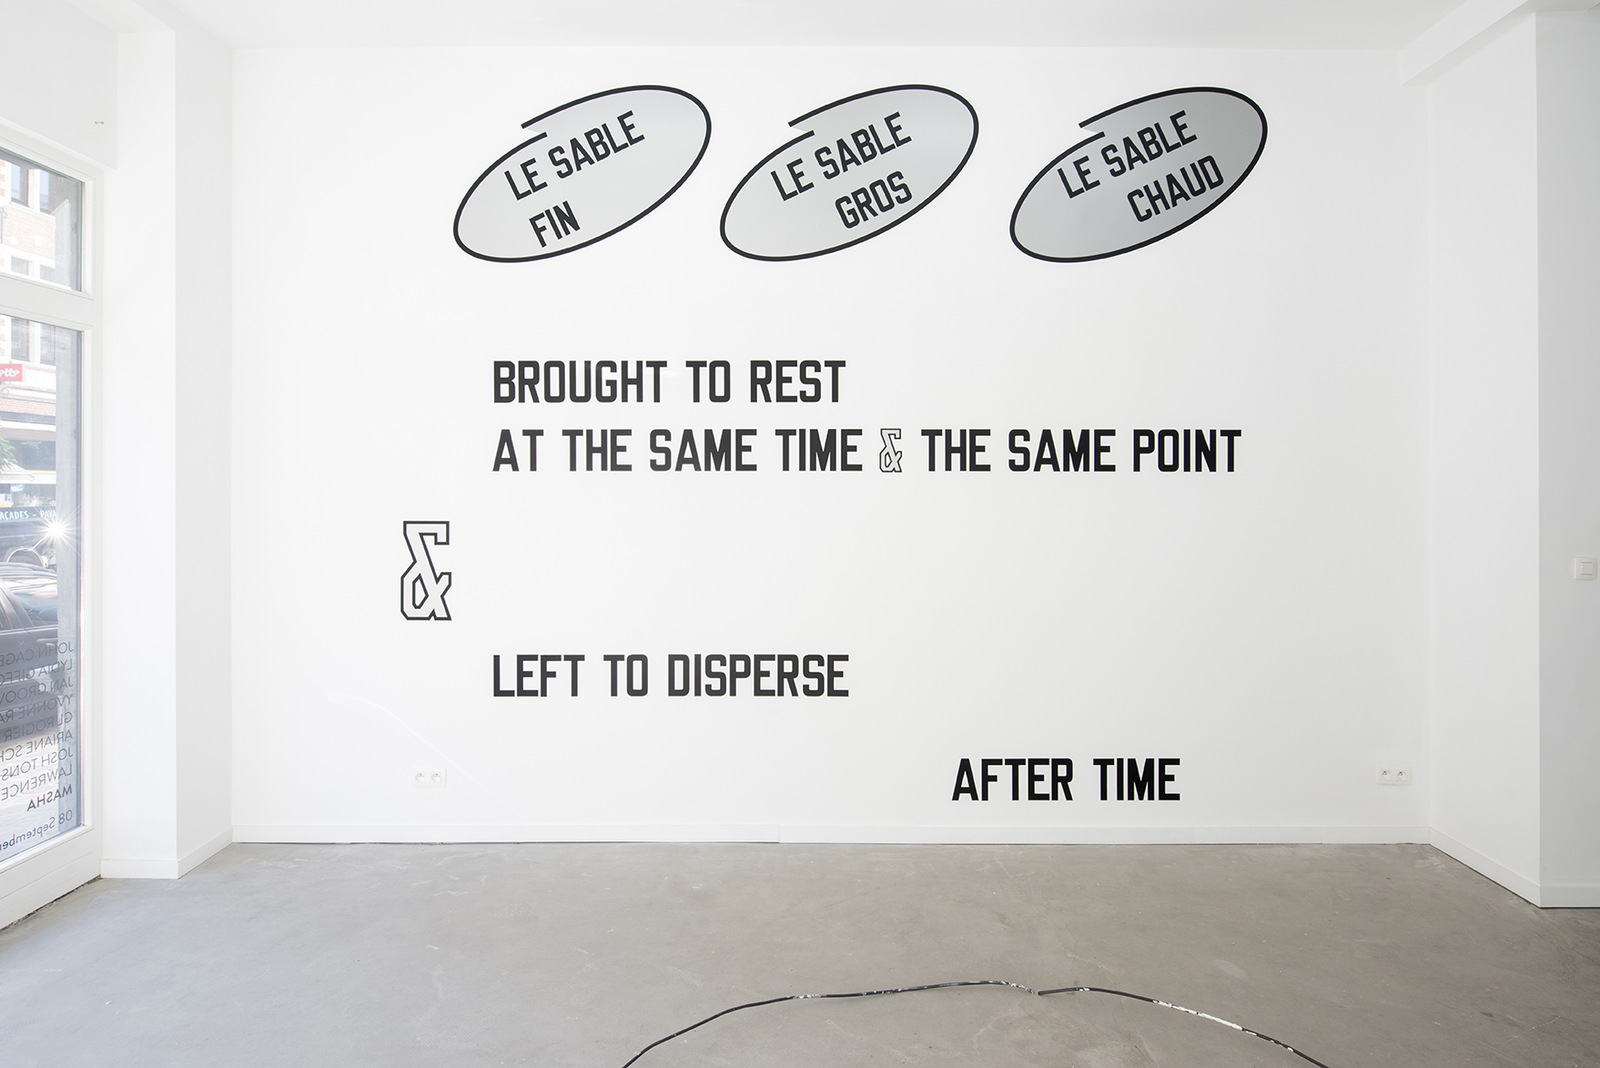 Lawrence Weiner, 'Le sable fin, le sable gros, le sable chaud, brought to rest at the same time & the same point & left to disperse after time', 2008